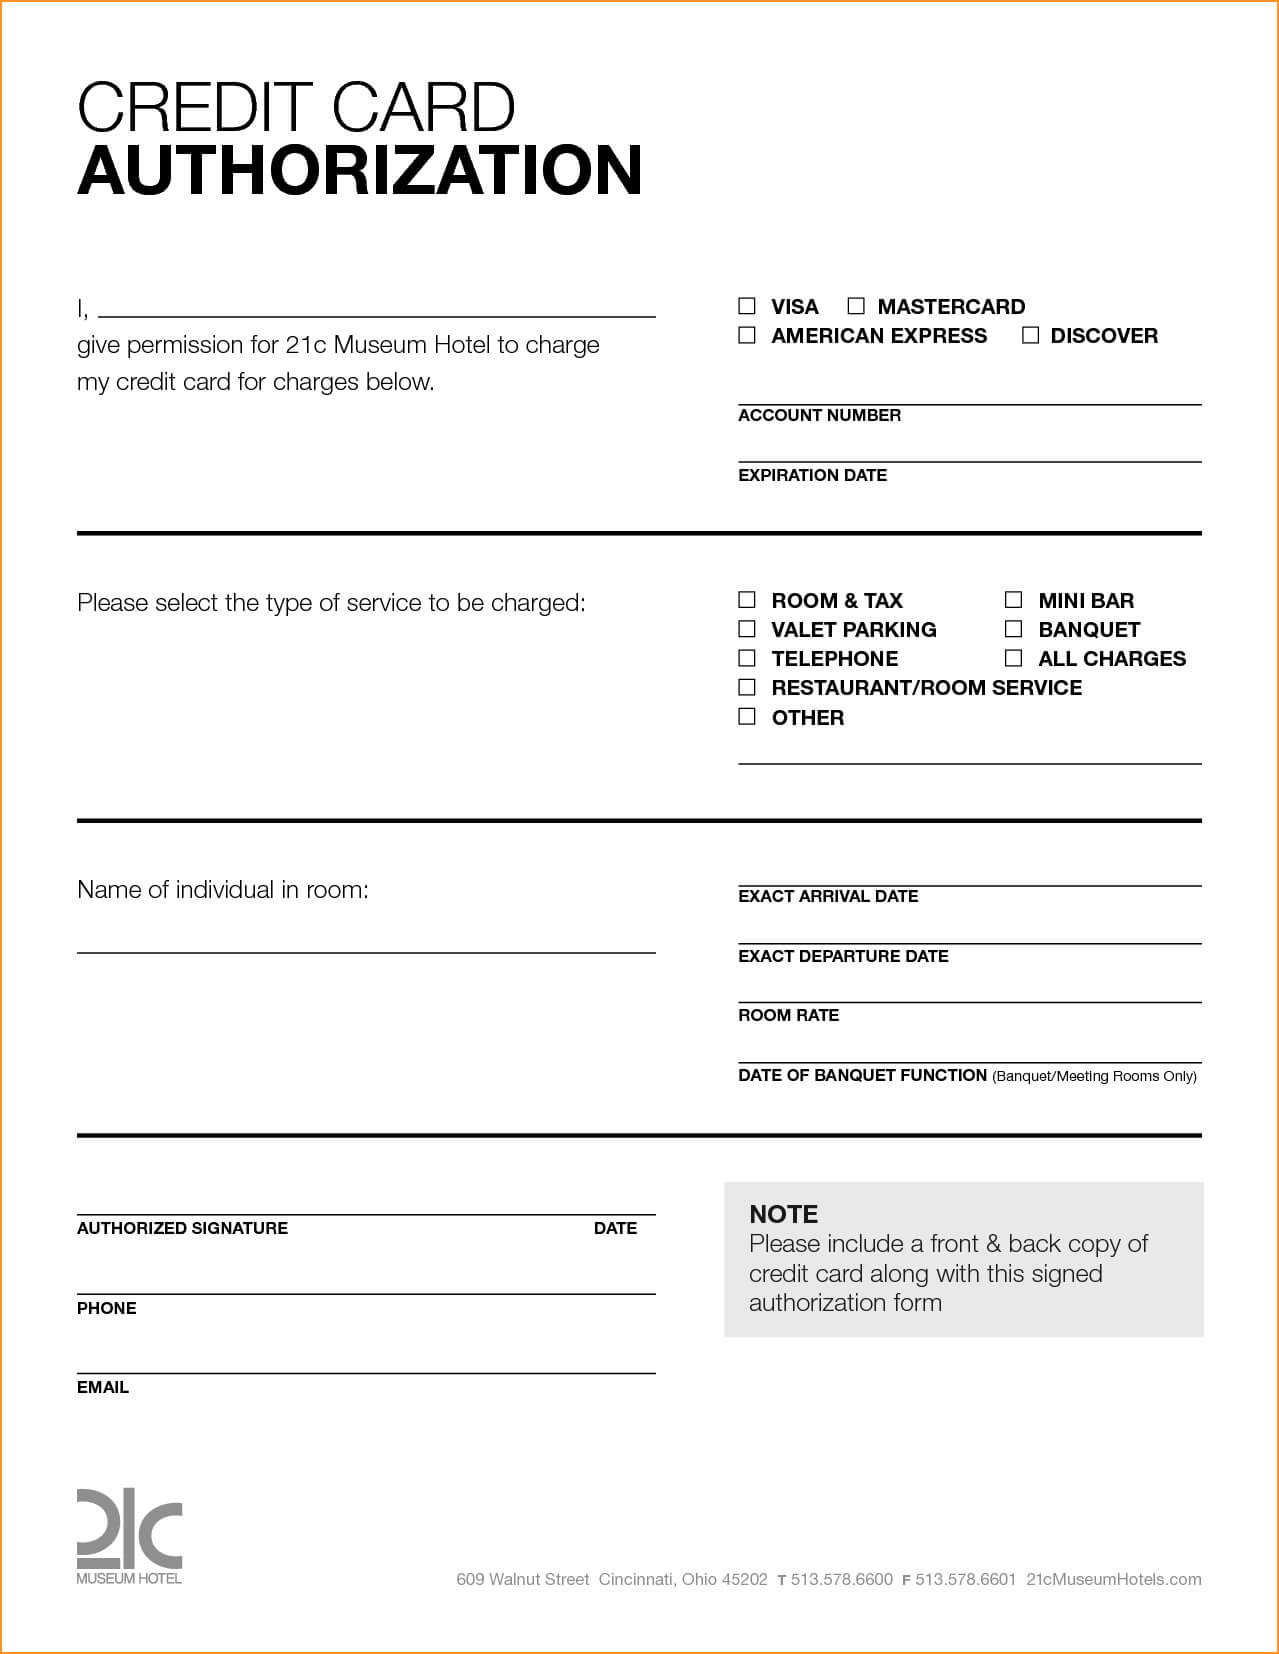 Pinlak Lam On Financial | Templates Printable Free Within Credit Card Authorization Form Template Word